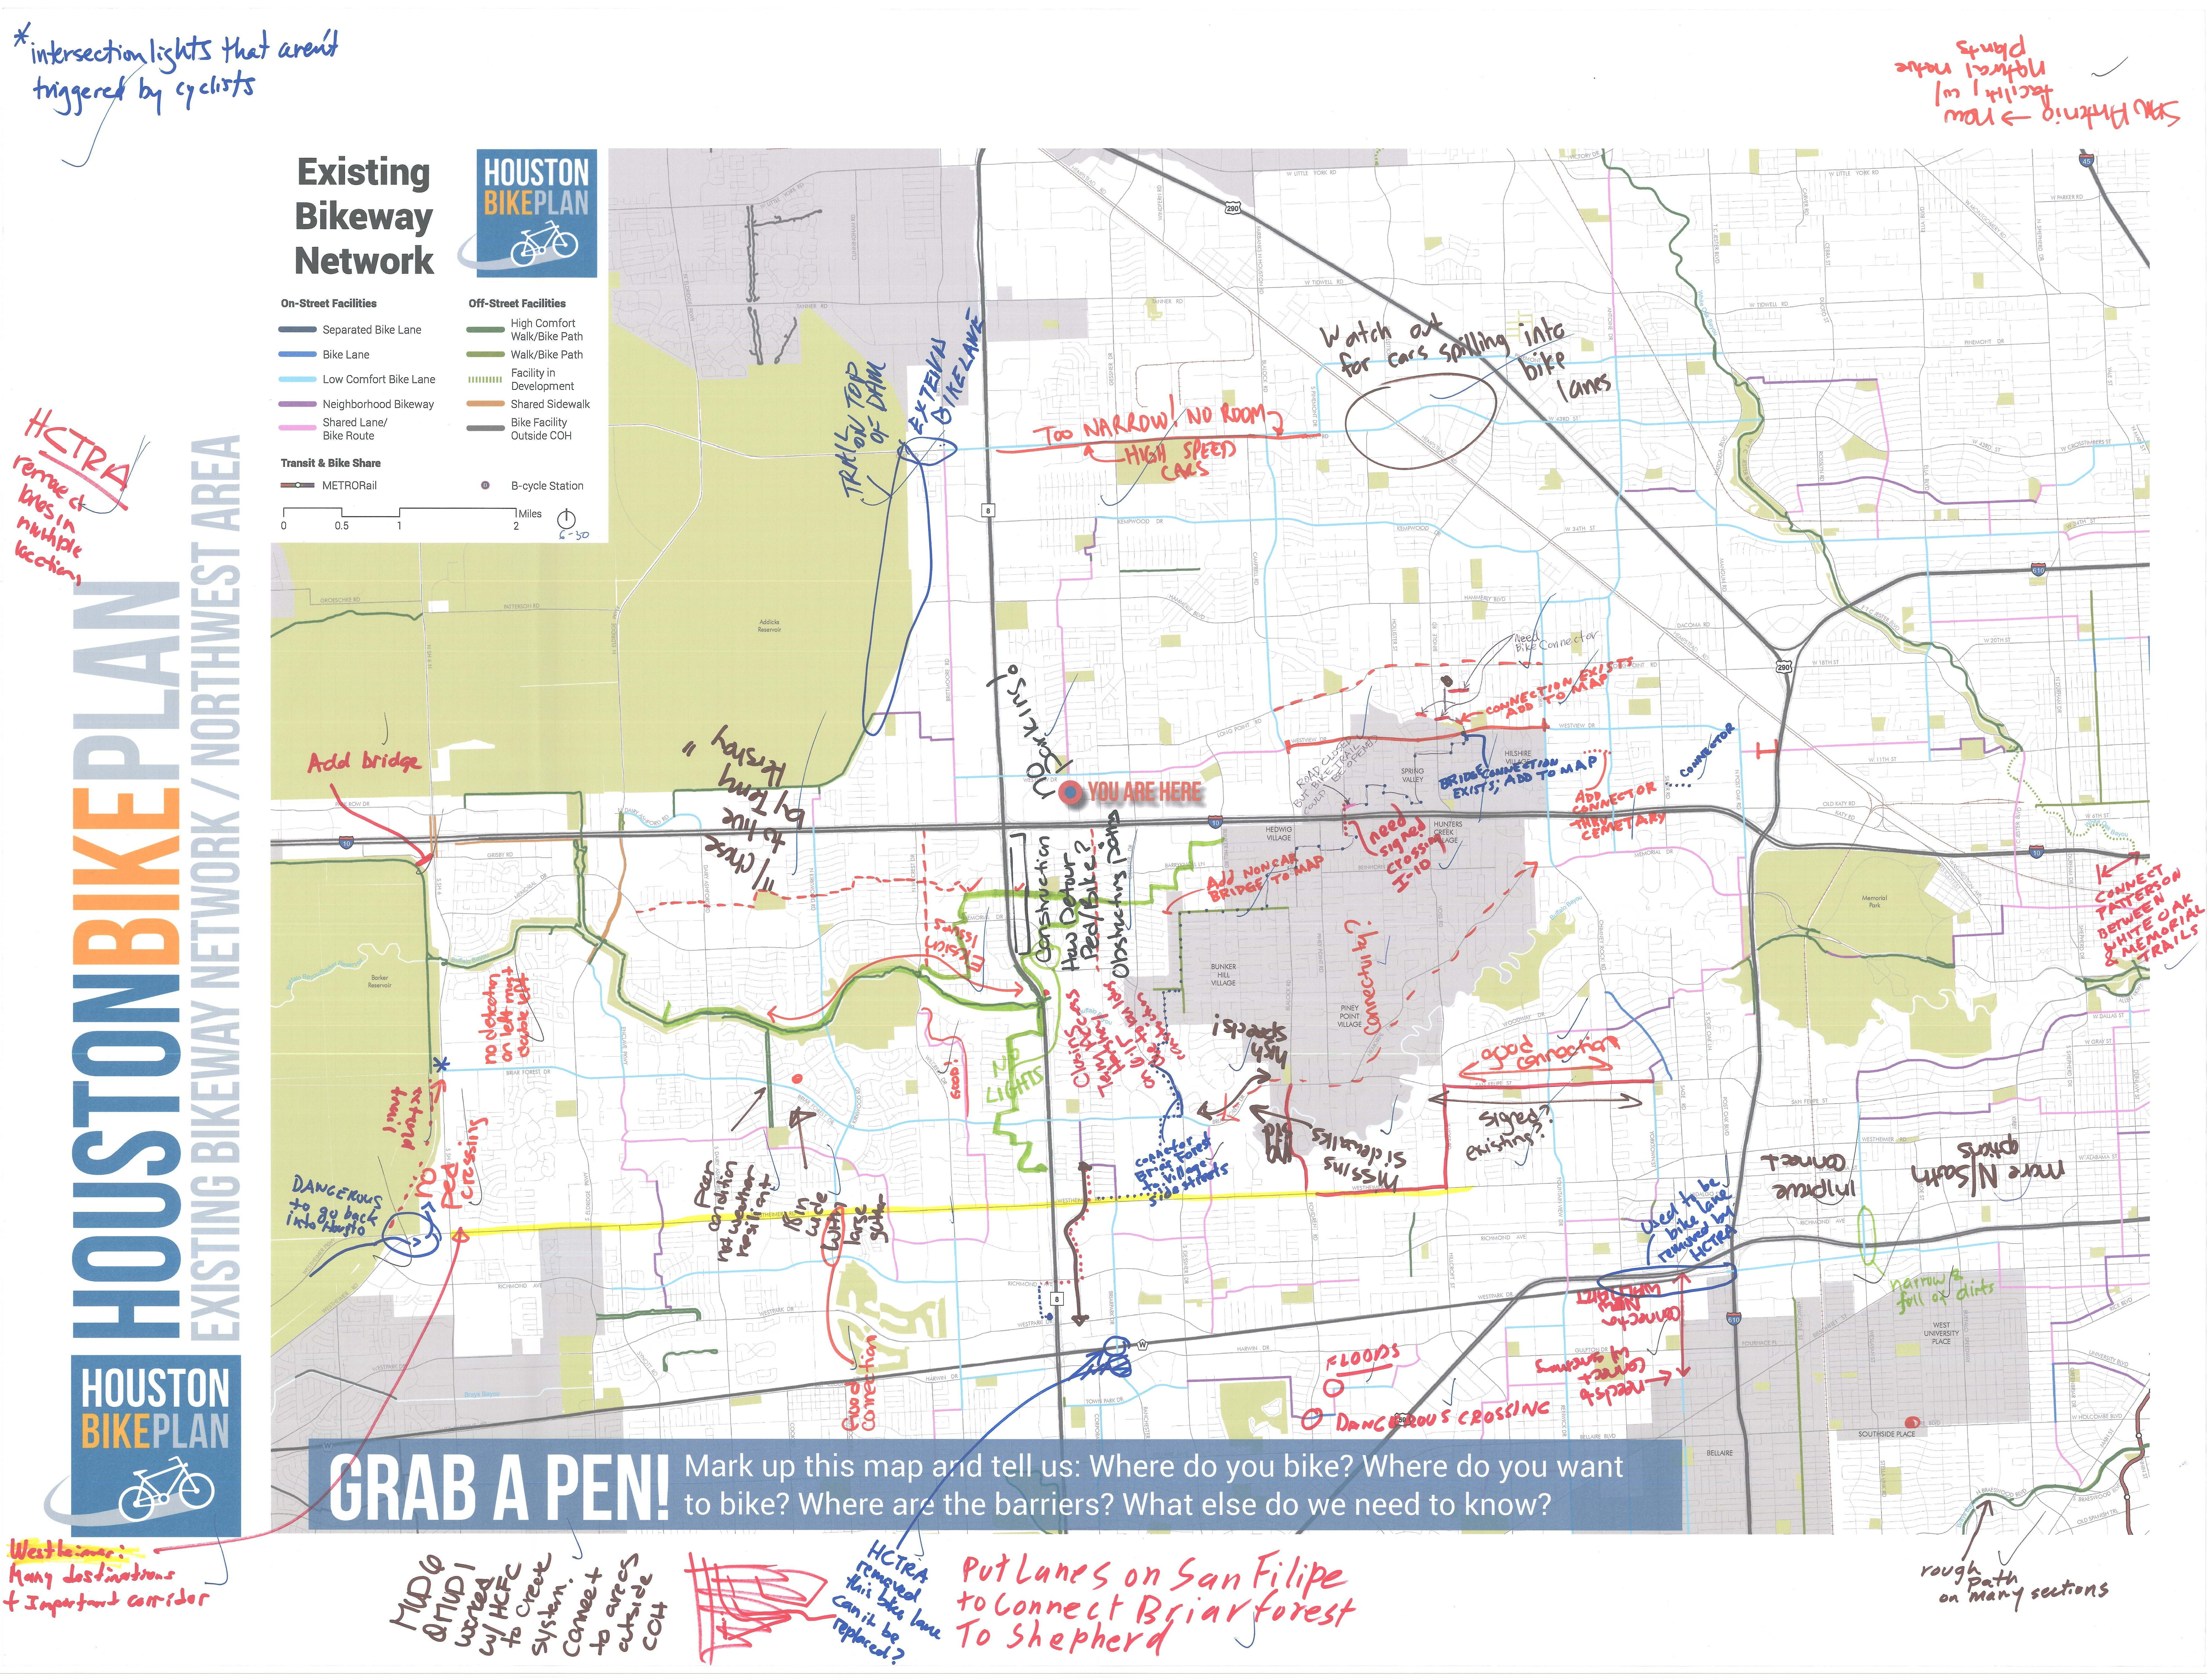 Plan Doents and Maps – Houston Bike Plan on houston zip code map, city of conroe tx map, texas interactive radar weather map, houston metro bus map, houston neighborhood map, houston streetcar district map, houston city road map, katy tx map, houston texas map, kingwood texas map, prairie view tx map,